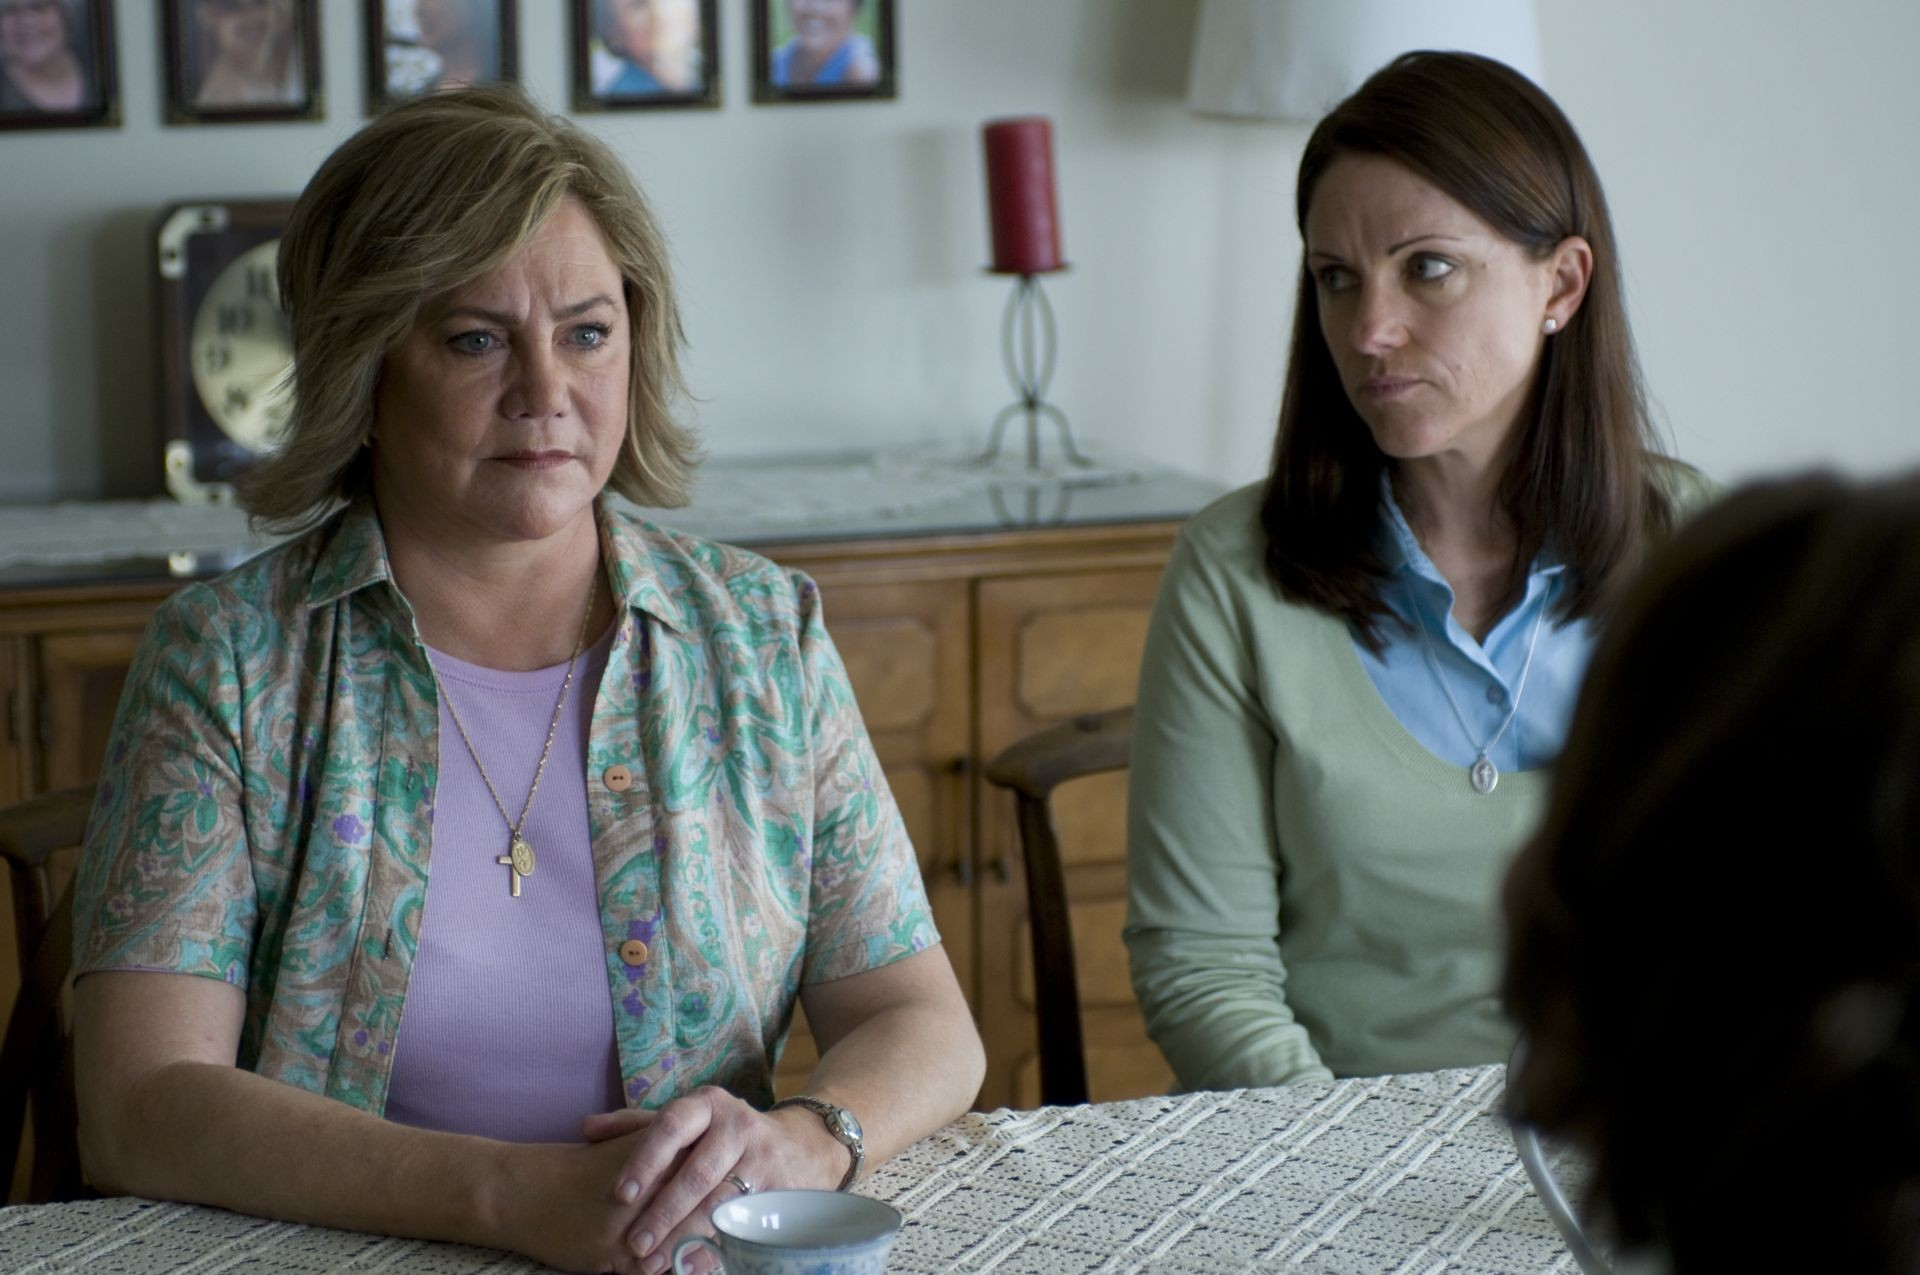 Gay Marriage Essay Thesis The Perfect Family The Perfect Family Stars Kathleen Turner As Suburban  Mother And Devout Catholic Eileen The Yellow Wallpaper Critical Essay also Essay Papers Examples The Perfect Family Essay Help Ihassignmentyoiablogdasilvanainfo Essay Samples For High School Students